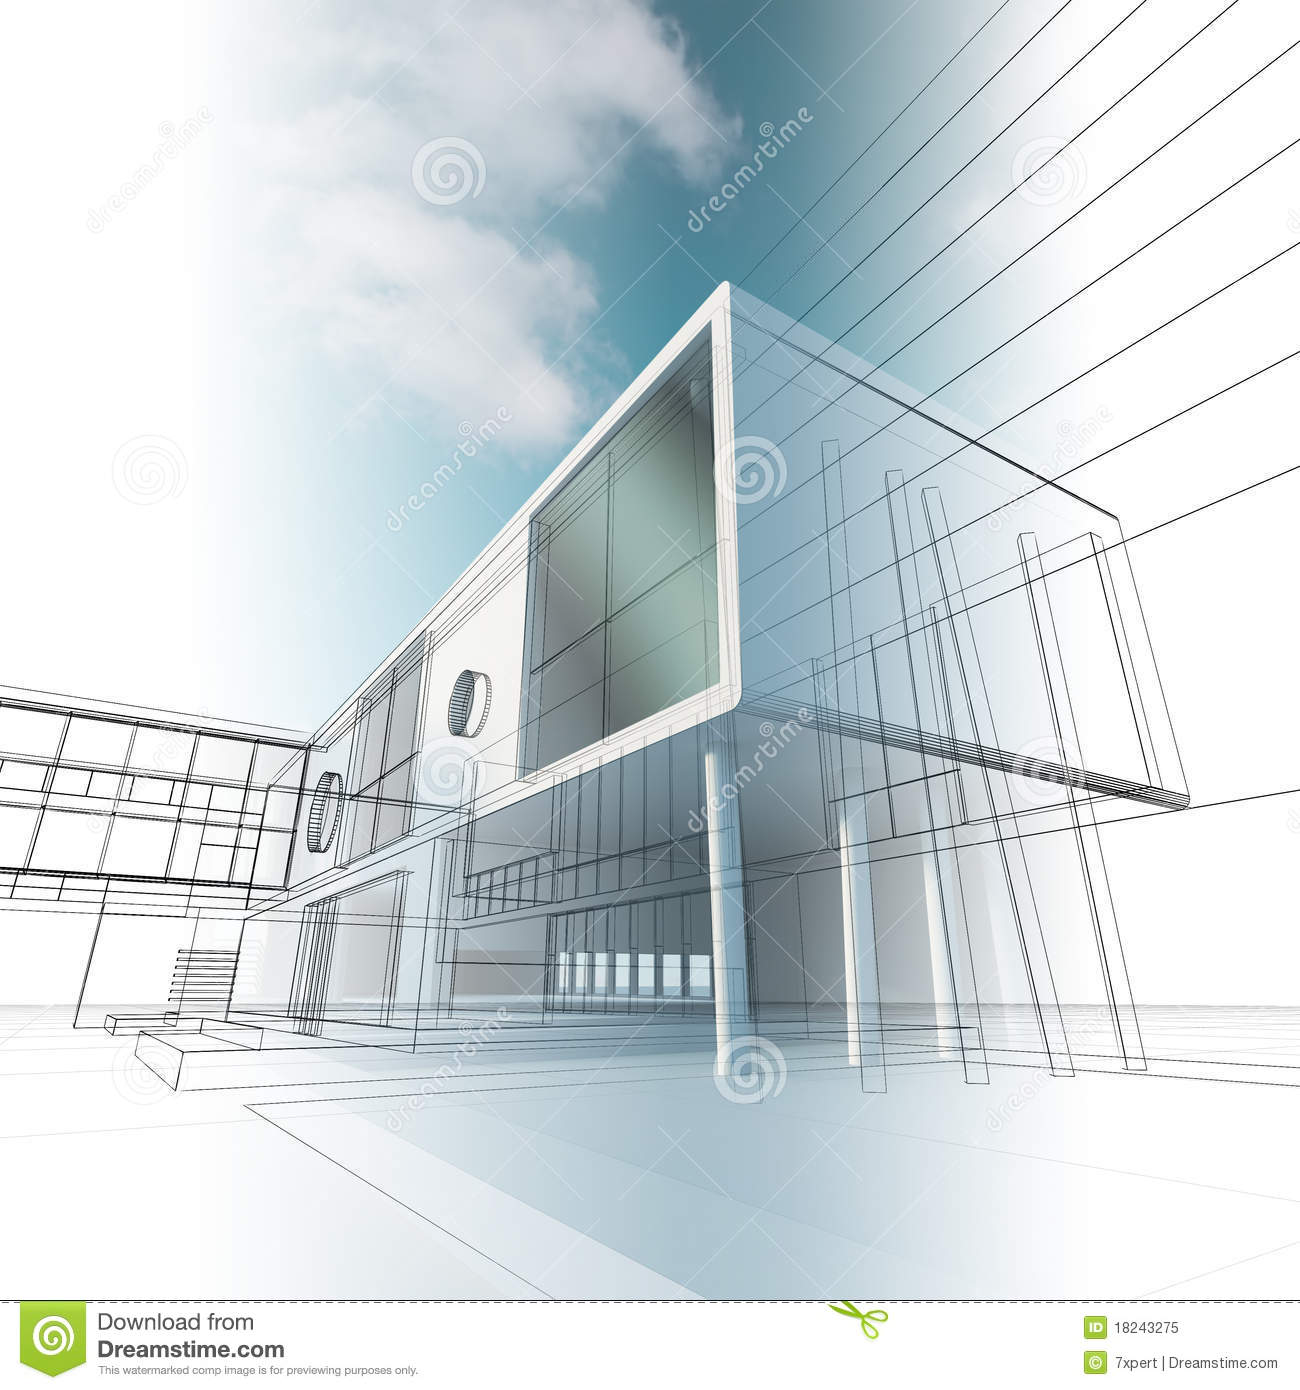 Building Concept Drawing Royalty Free Stock Photo Image